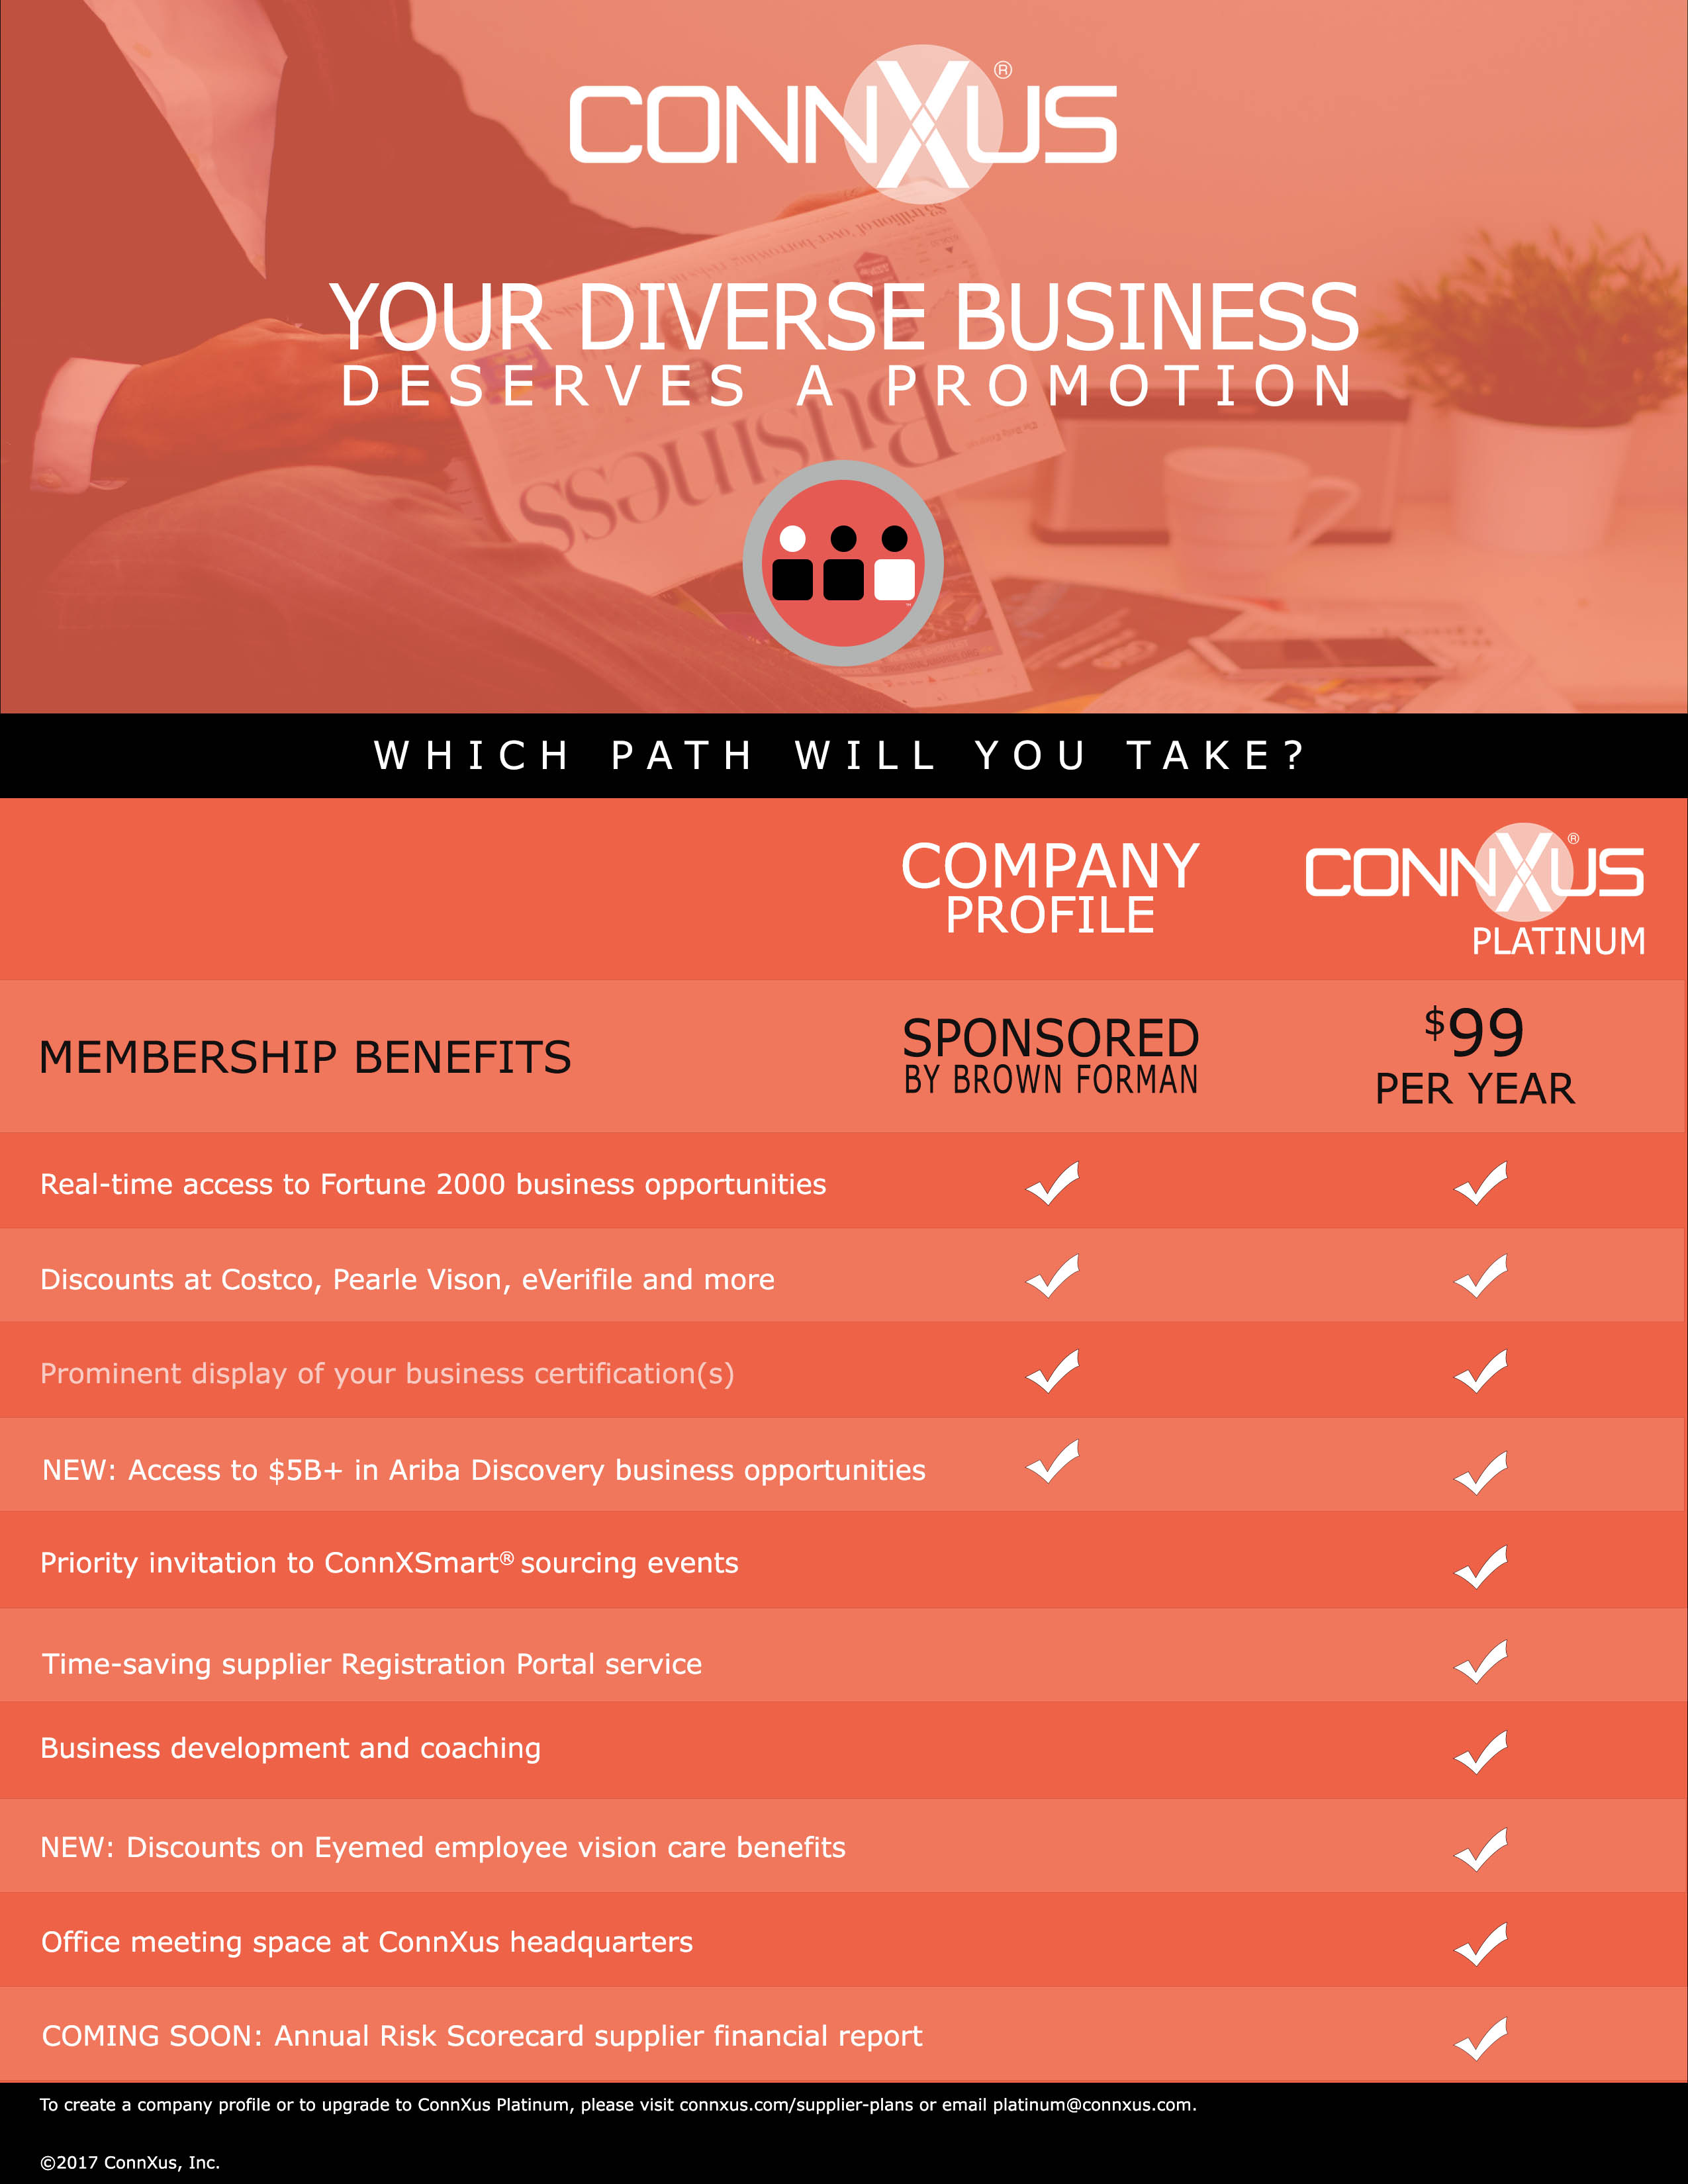 Naaahr business owners national association of african americans fortune 2000 companies on the connxus platform seek out supplier profiles with up to date and downloadable diversity certification documents 1betcityfo Choice Image